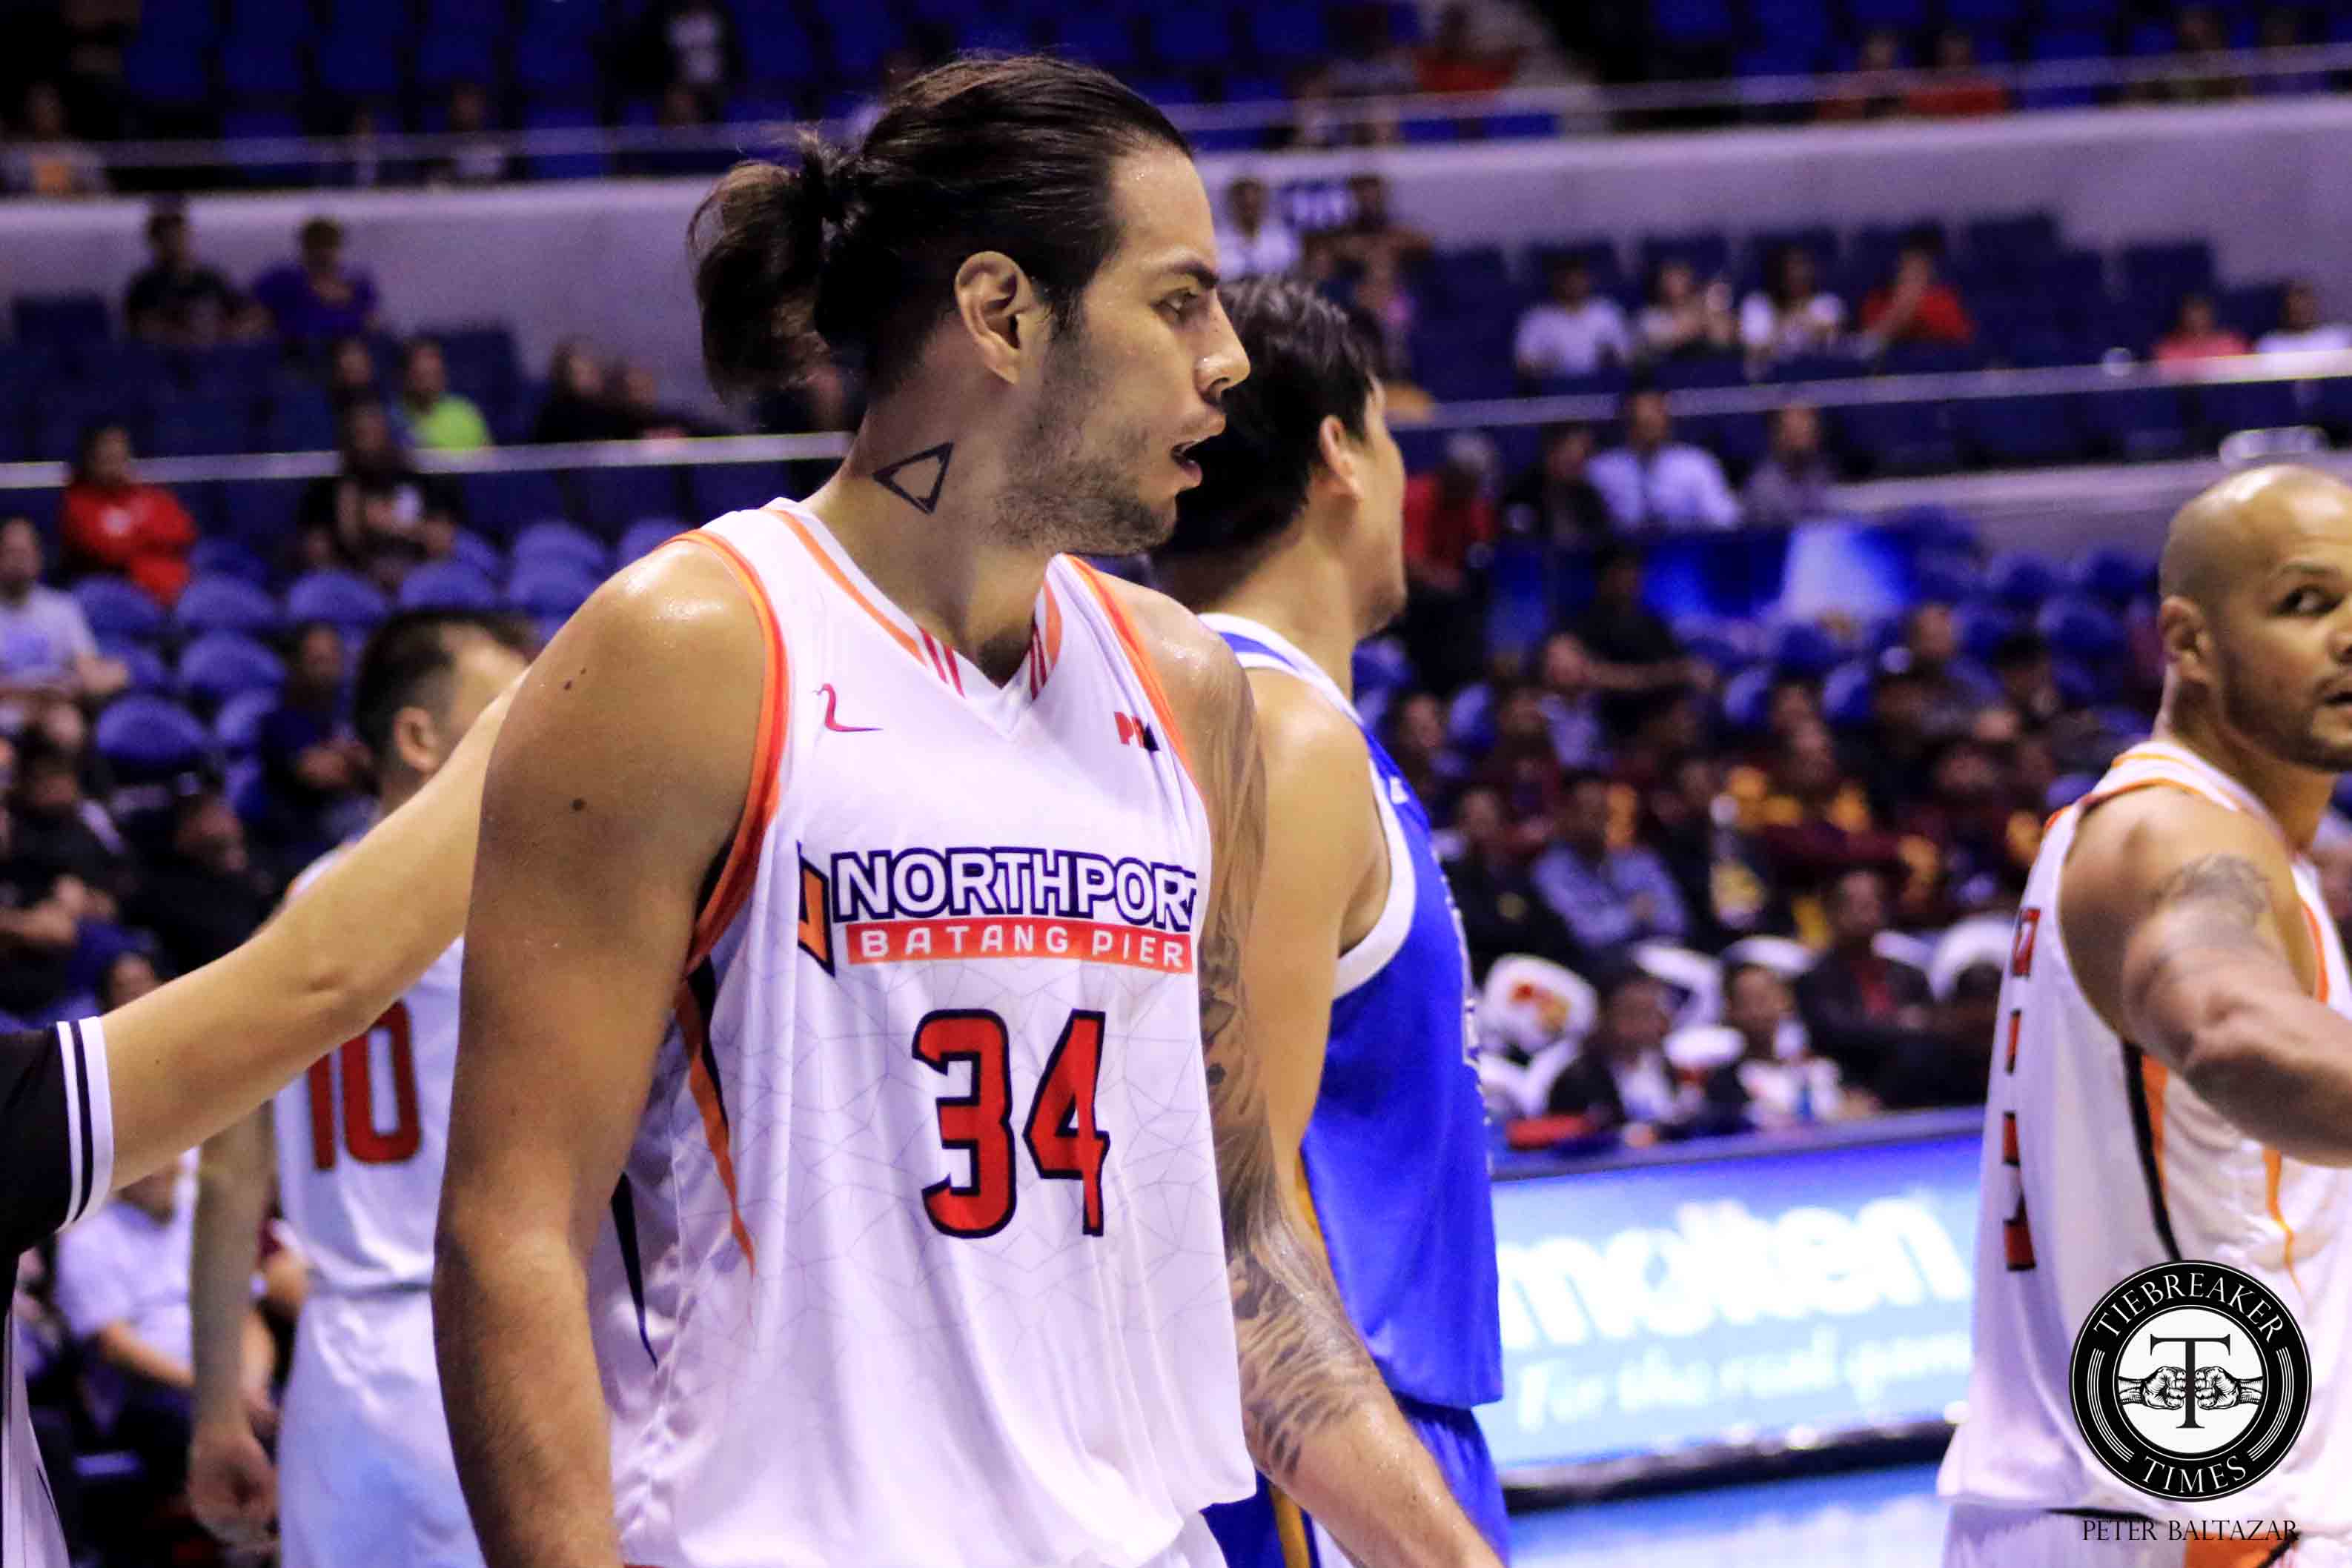 Tiebreaker Times Standhardinger credits record-setting 61-minute game to being in shape Basketball News PBA  PBA Season 44 Northport Batang Pier Christian Standhardinger 2019 PBA Governors Cup